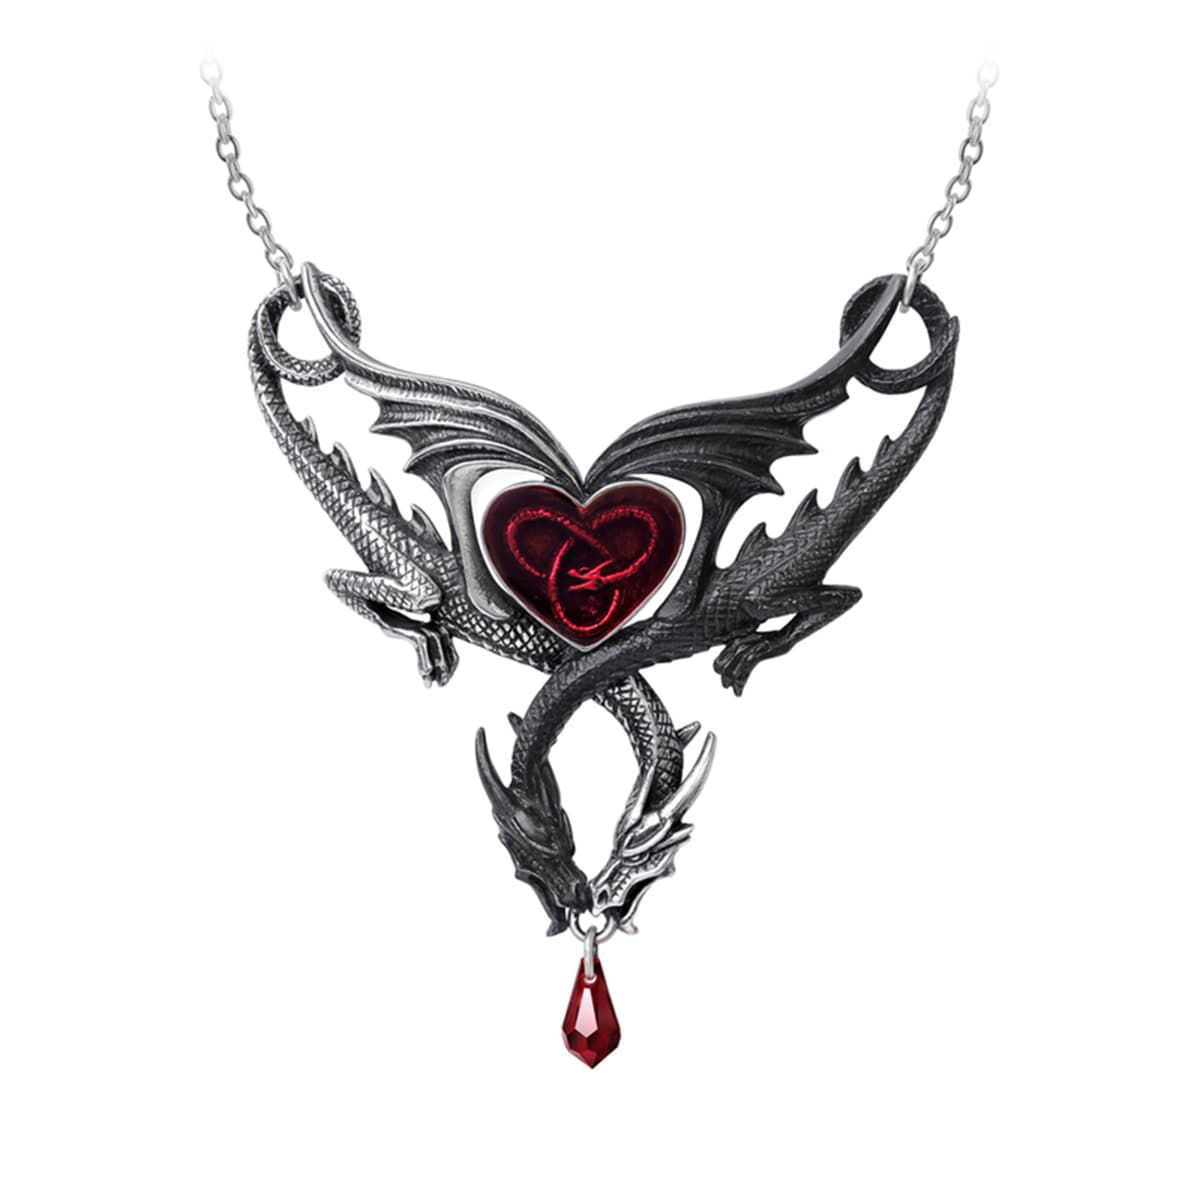 pewter necklace has two intertwined dragons, one black, one silver, red enameled heart in center and red Swarovski teardrop crystal